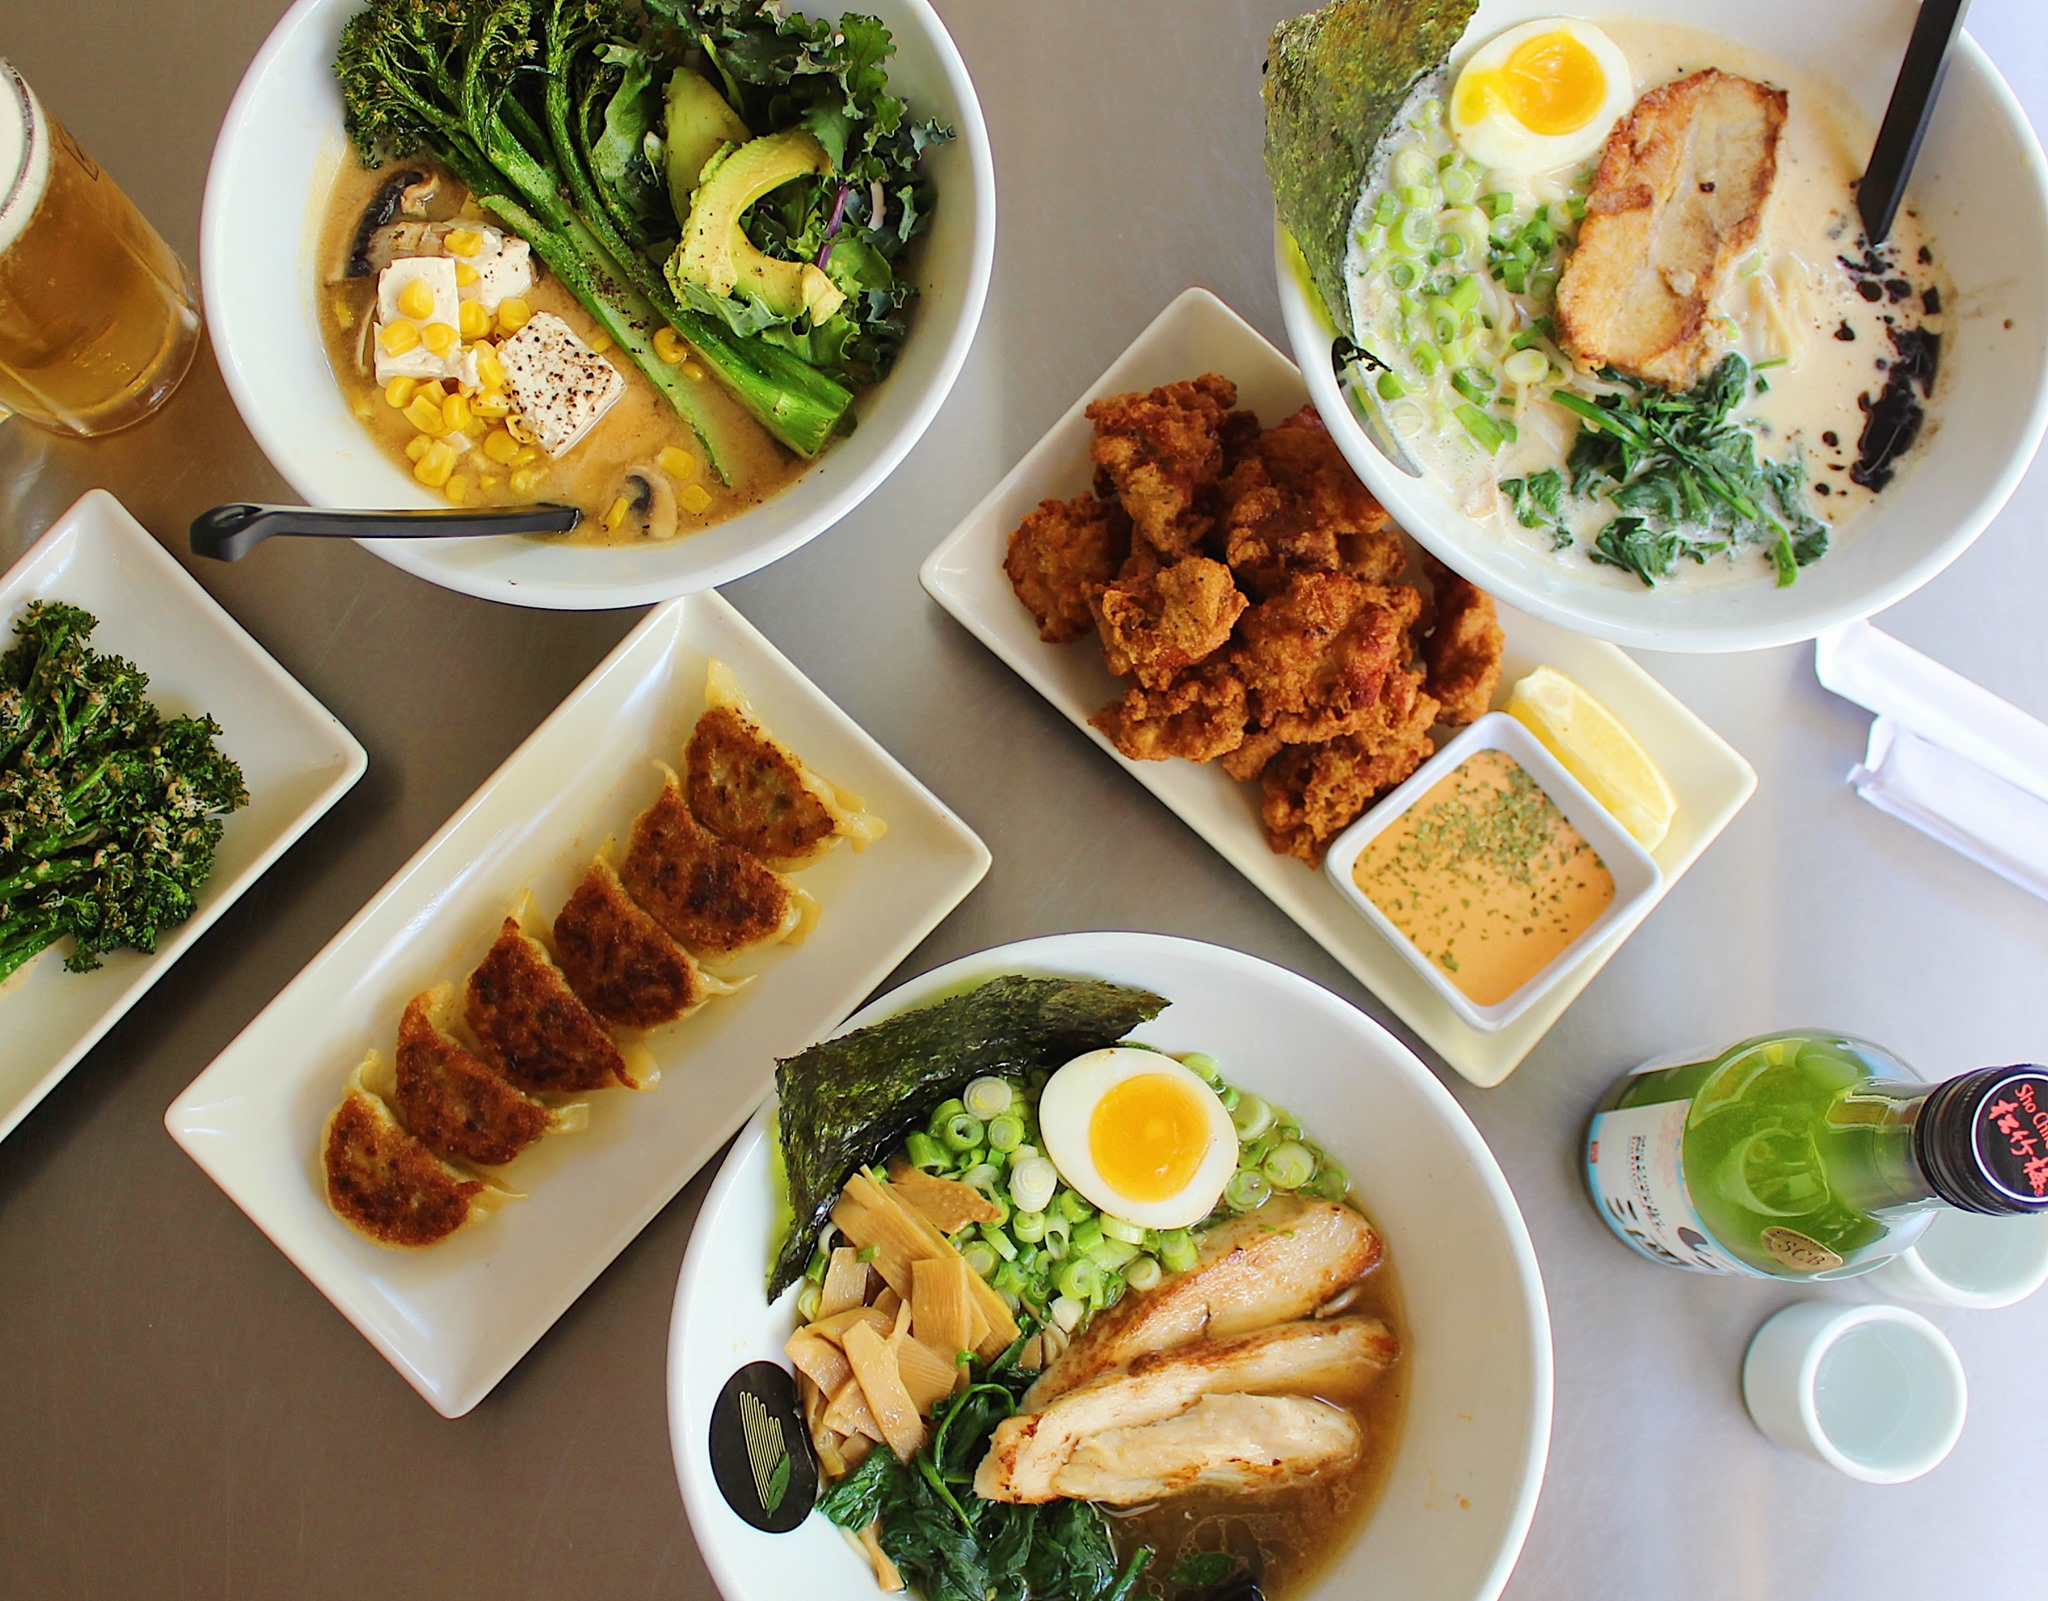 Bowls of ramen and assorted appetizers from Silverlake Ramen